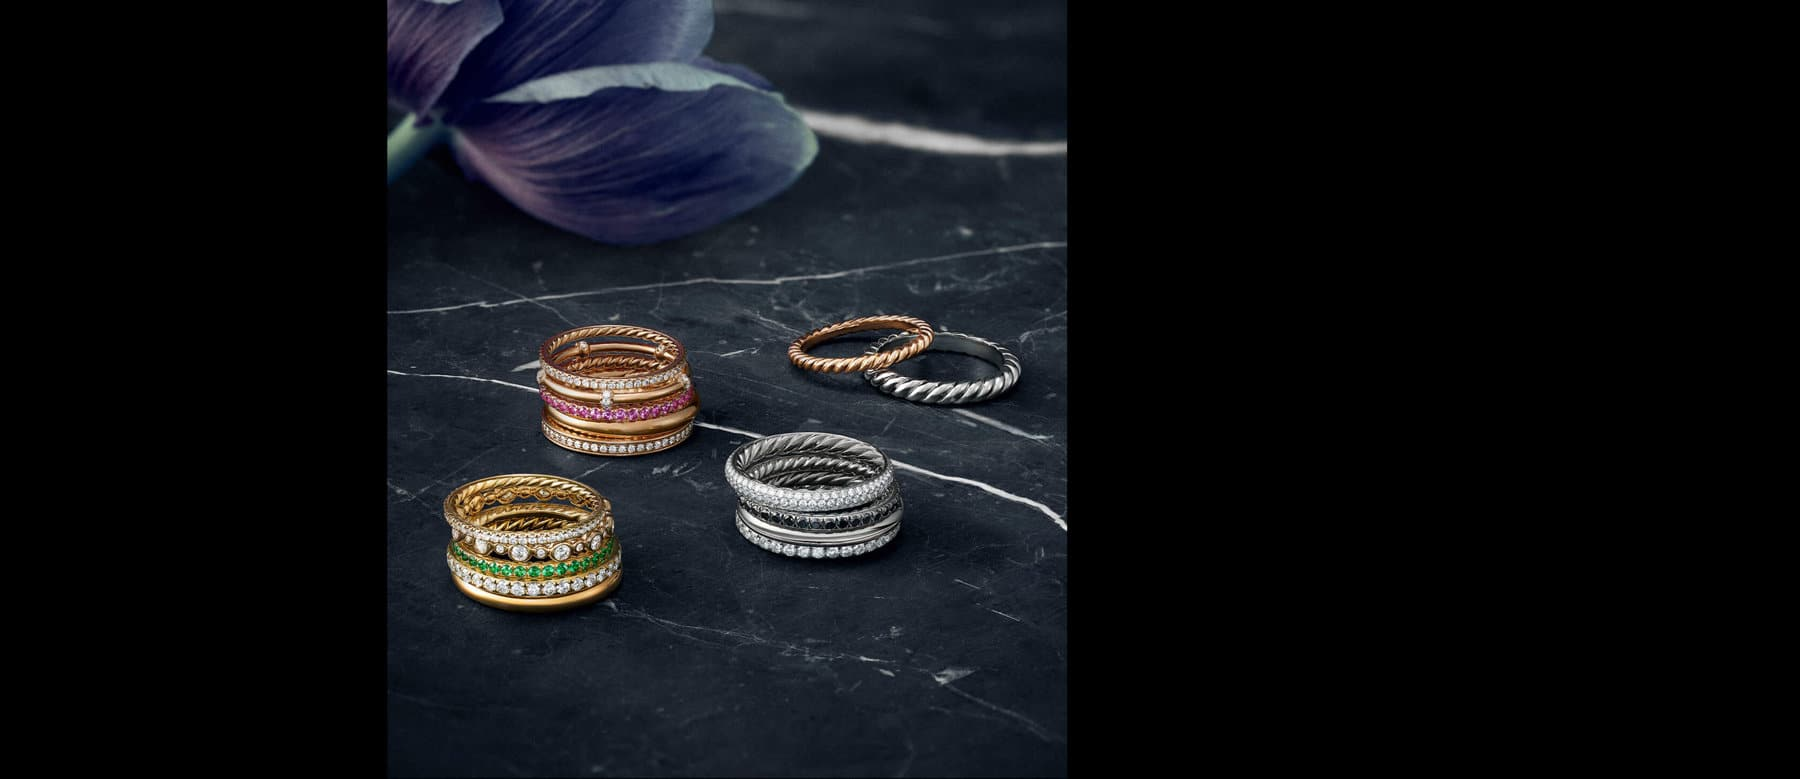 A color photograph shows four stacks of David Yurman women's wedding bands crafted from 18K rose gold, platinum or 18K yellow gold. The bands shown are from the DY Eden, DY Astor, DY Unity and DY Starlight collections. They are crafted with or without, white diamonds, pink sapphires, black diamonds or tsavorites.